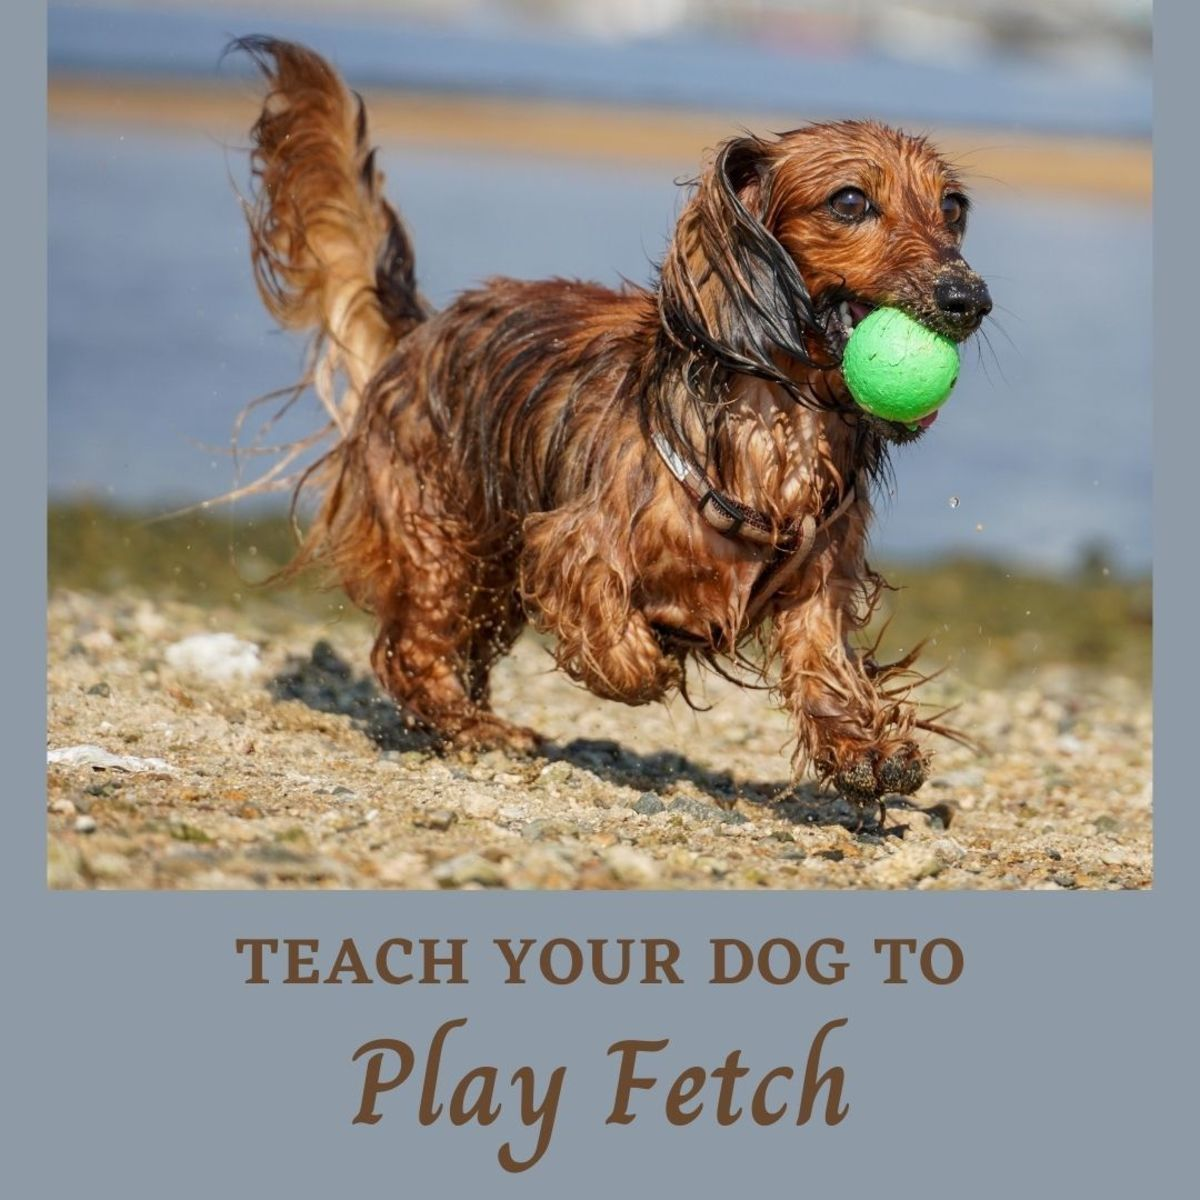 A how-to guide about teaching your dog to play fetch